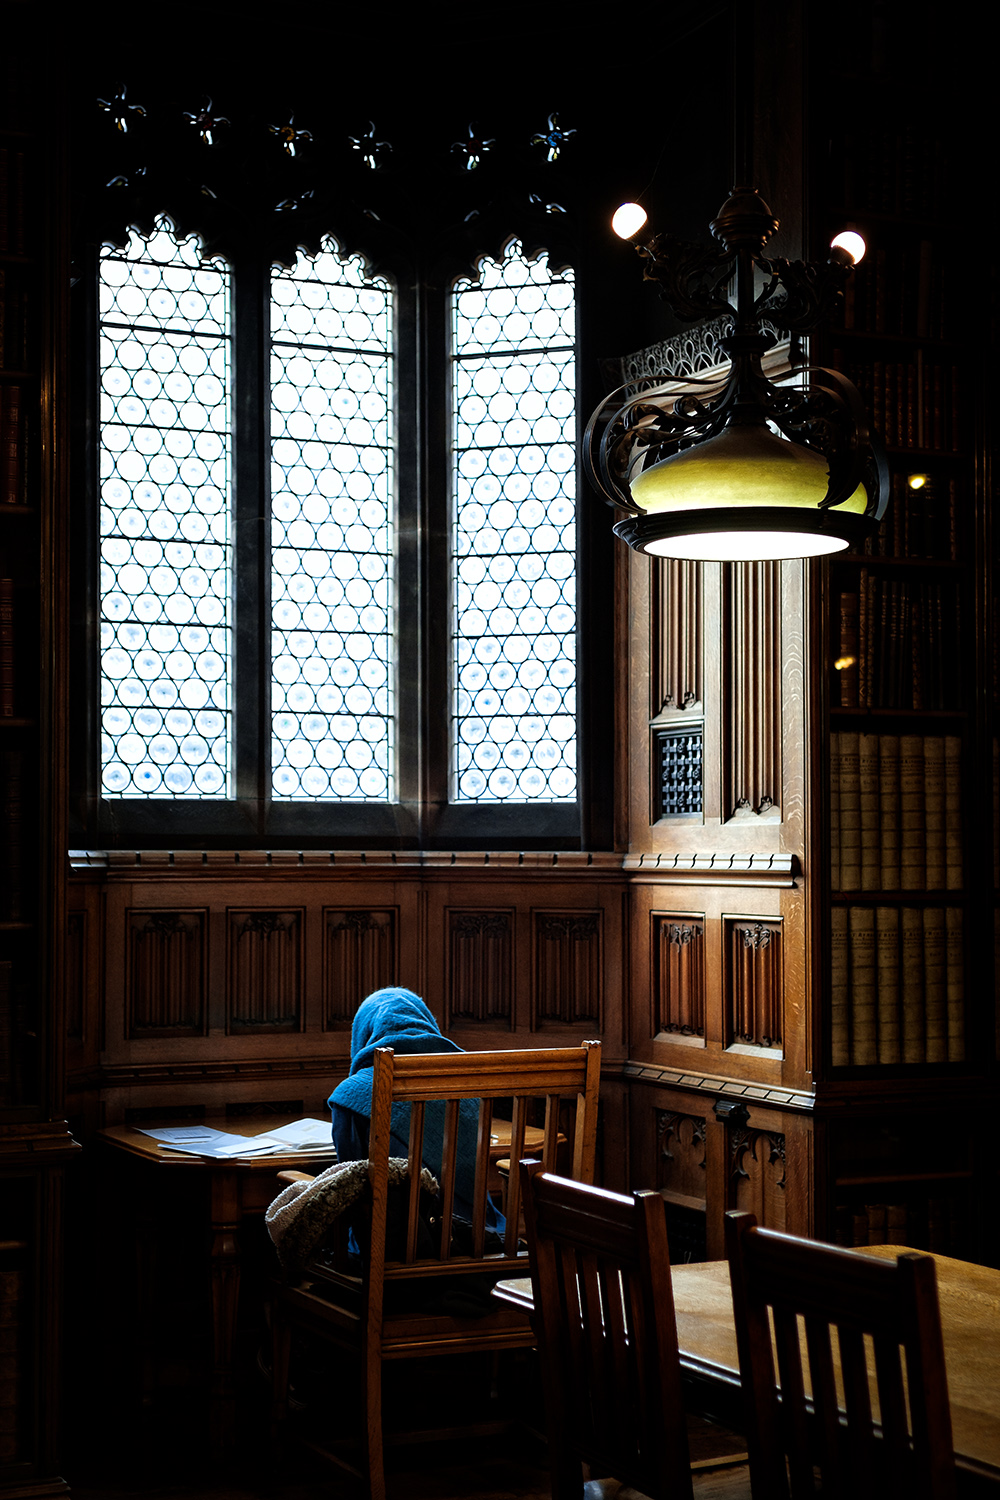 Studying in John Rylands Library, Manchester